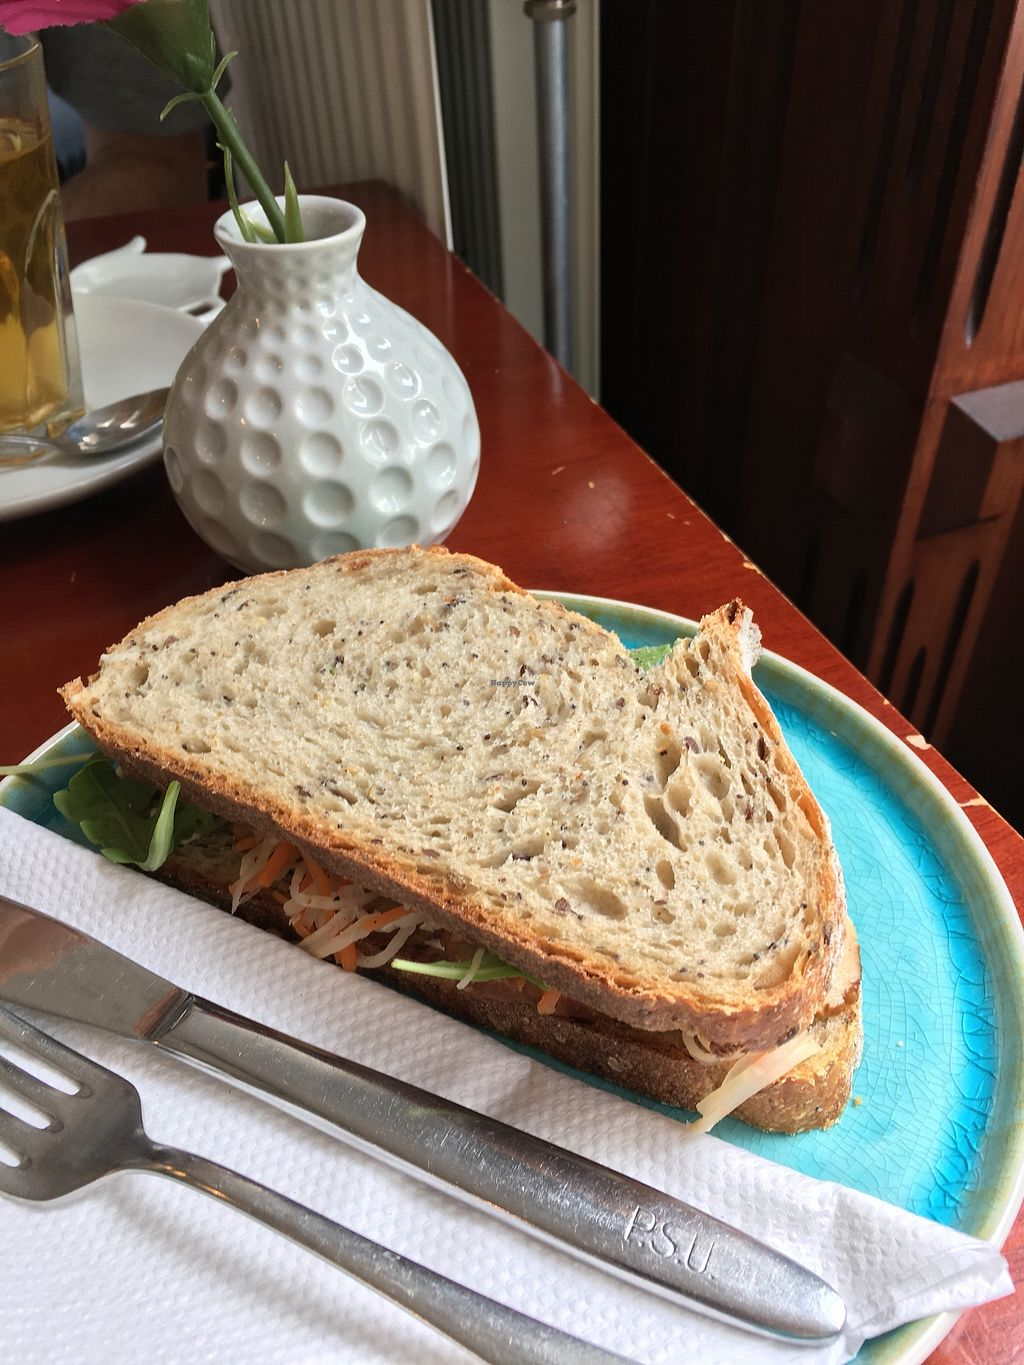 """Photo of Koffie ende Koeck  by <a href=""""/members/profile/vegan%20frog"""">vegan frog</a> <br/>Veggie sourdough sandwich <br/> July 1, 2017  - <a href='/contact/abuse/image/46128/275696'>Report</a>"""